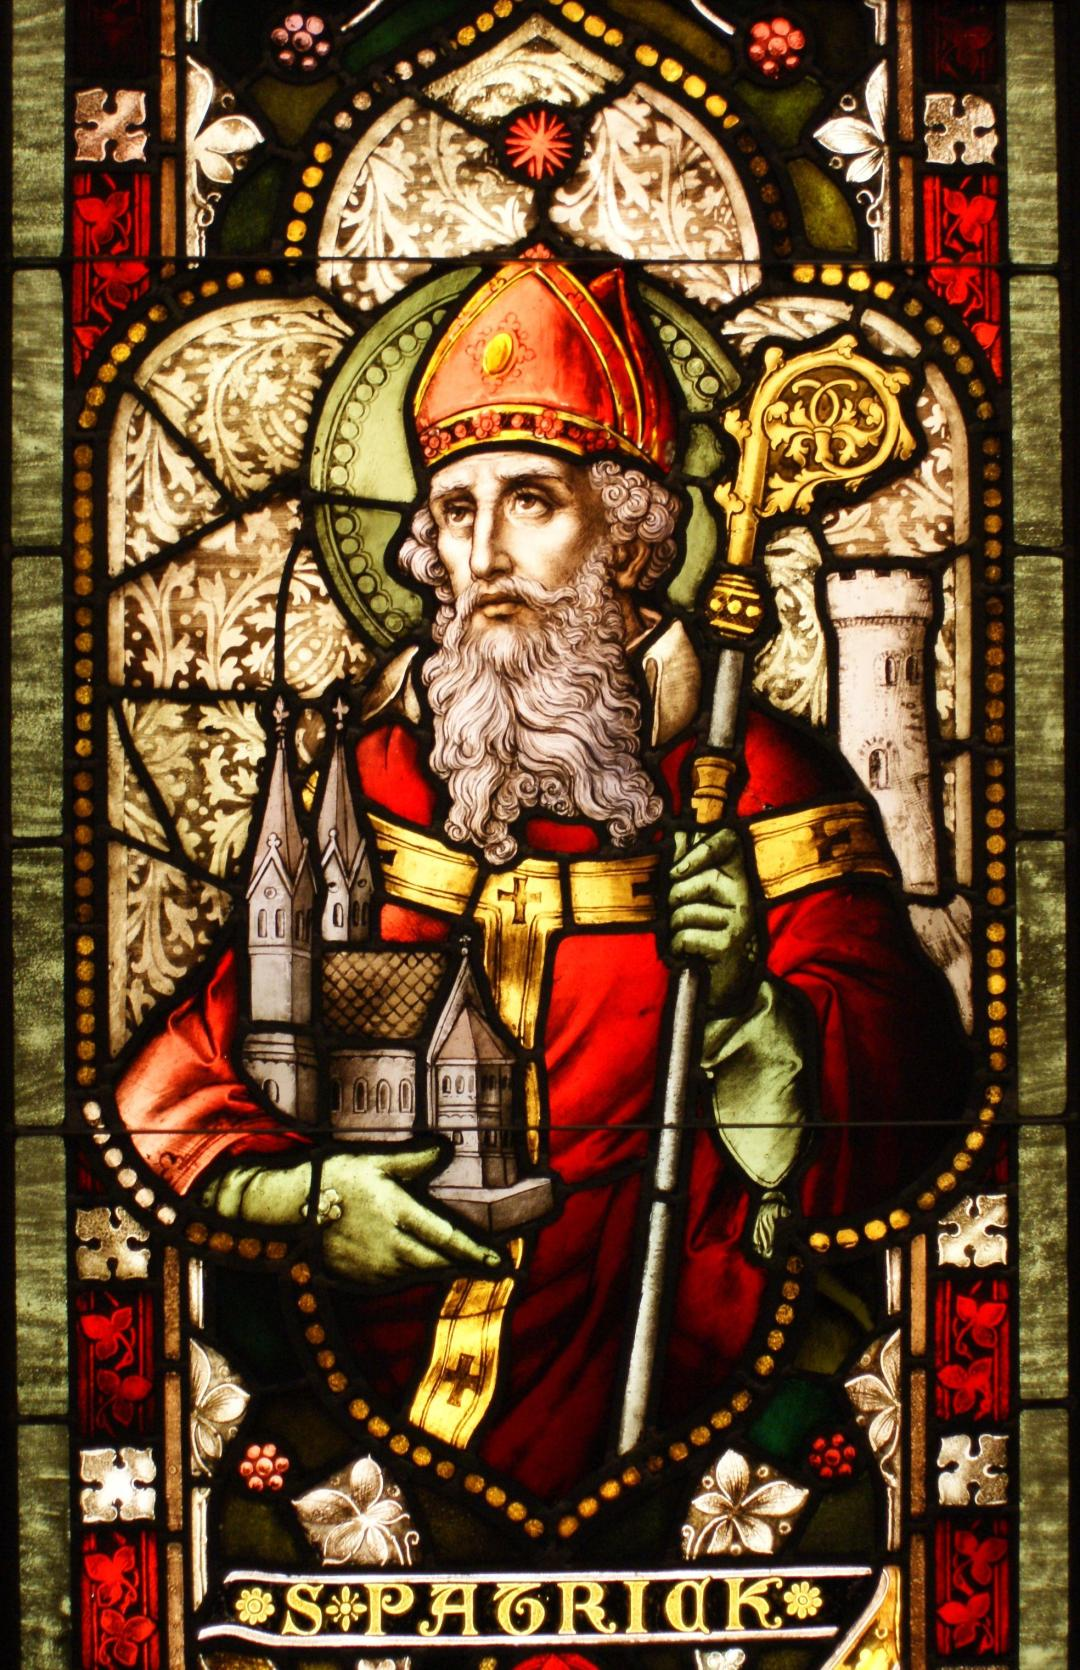 Saint_Patrick_(window) Sicarr - Flickr